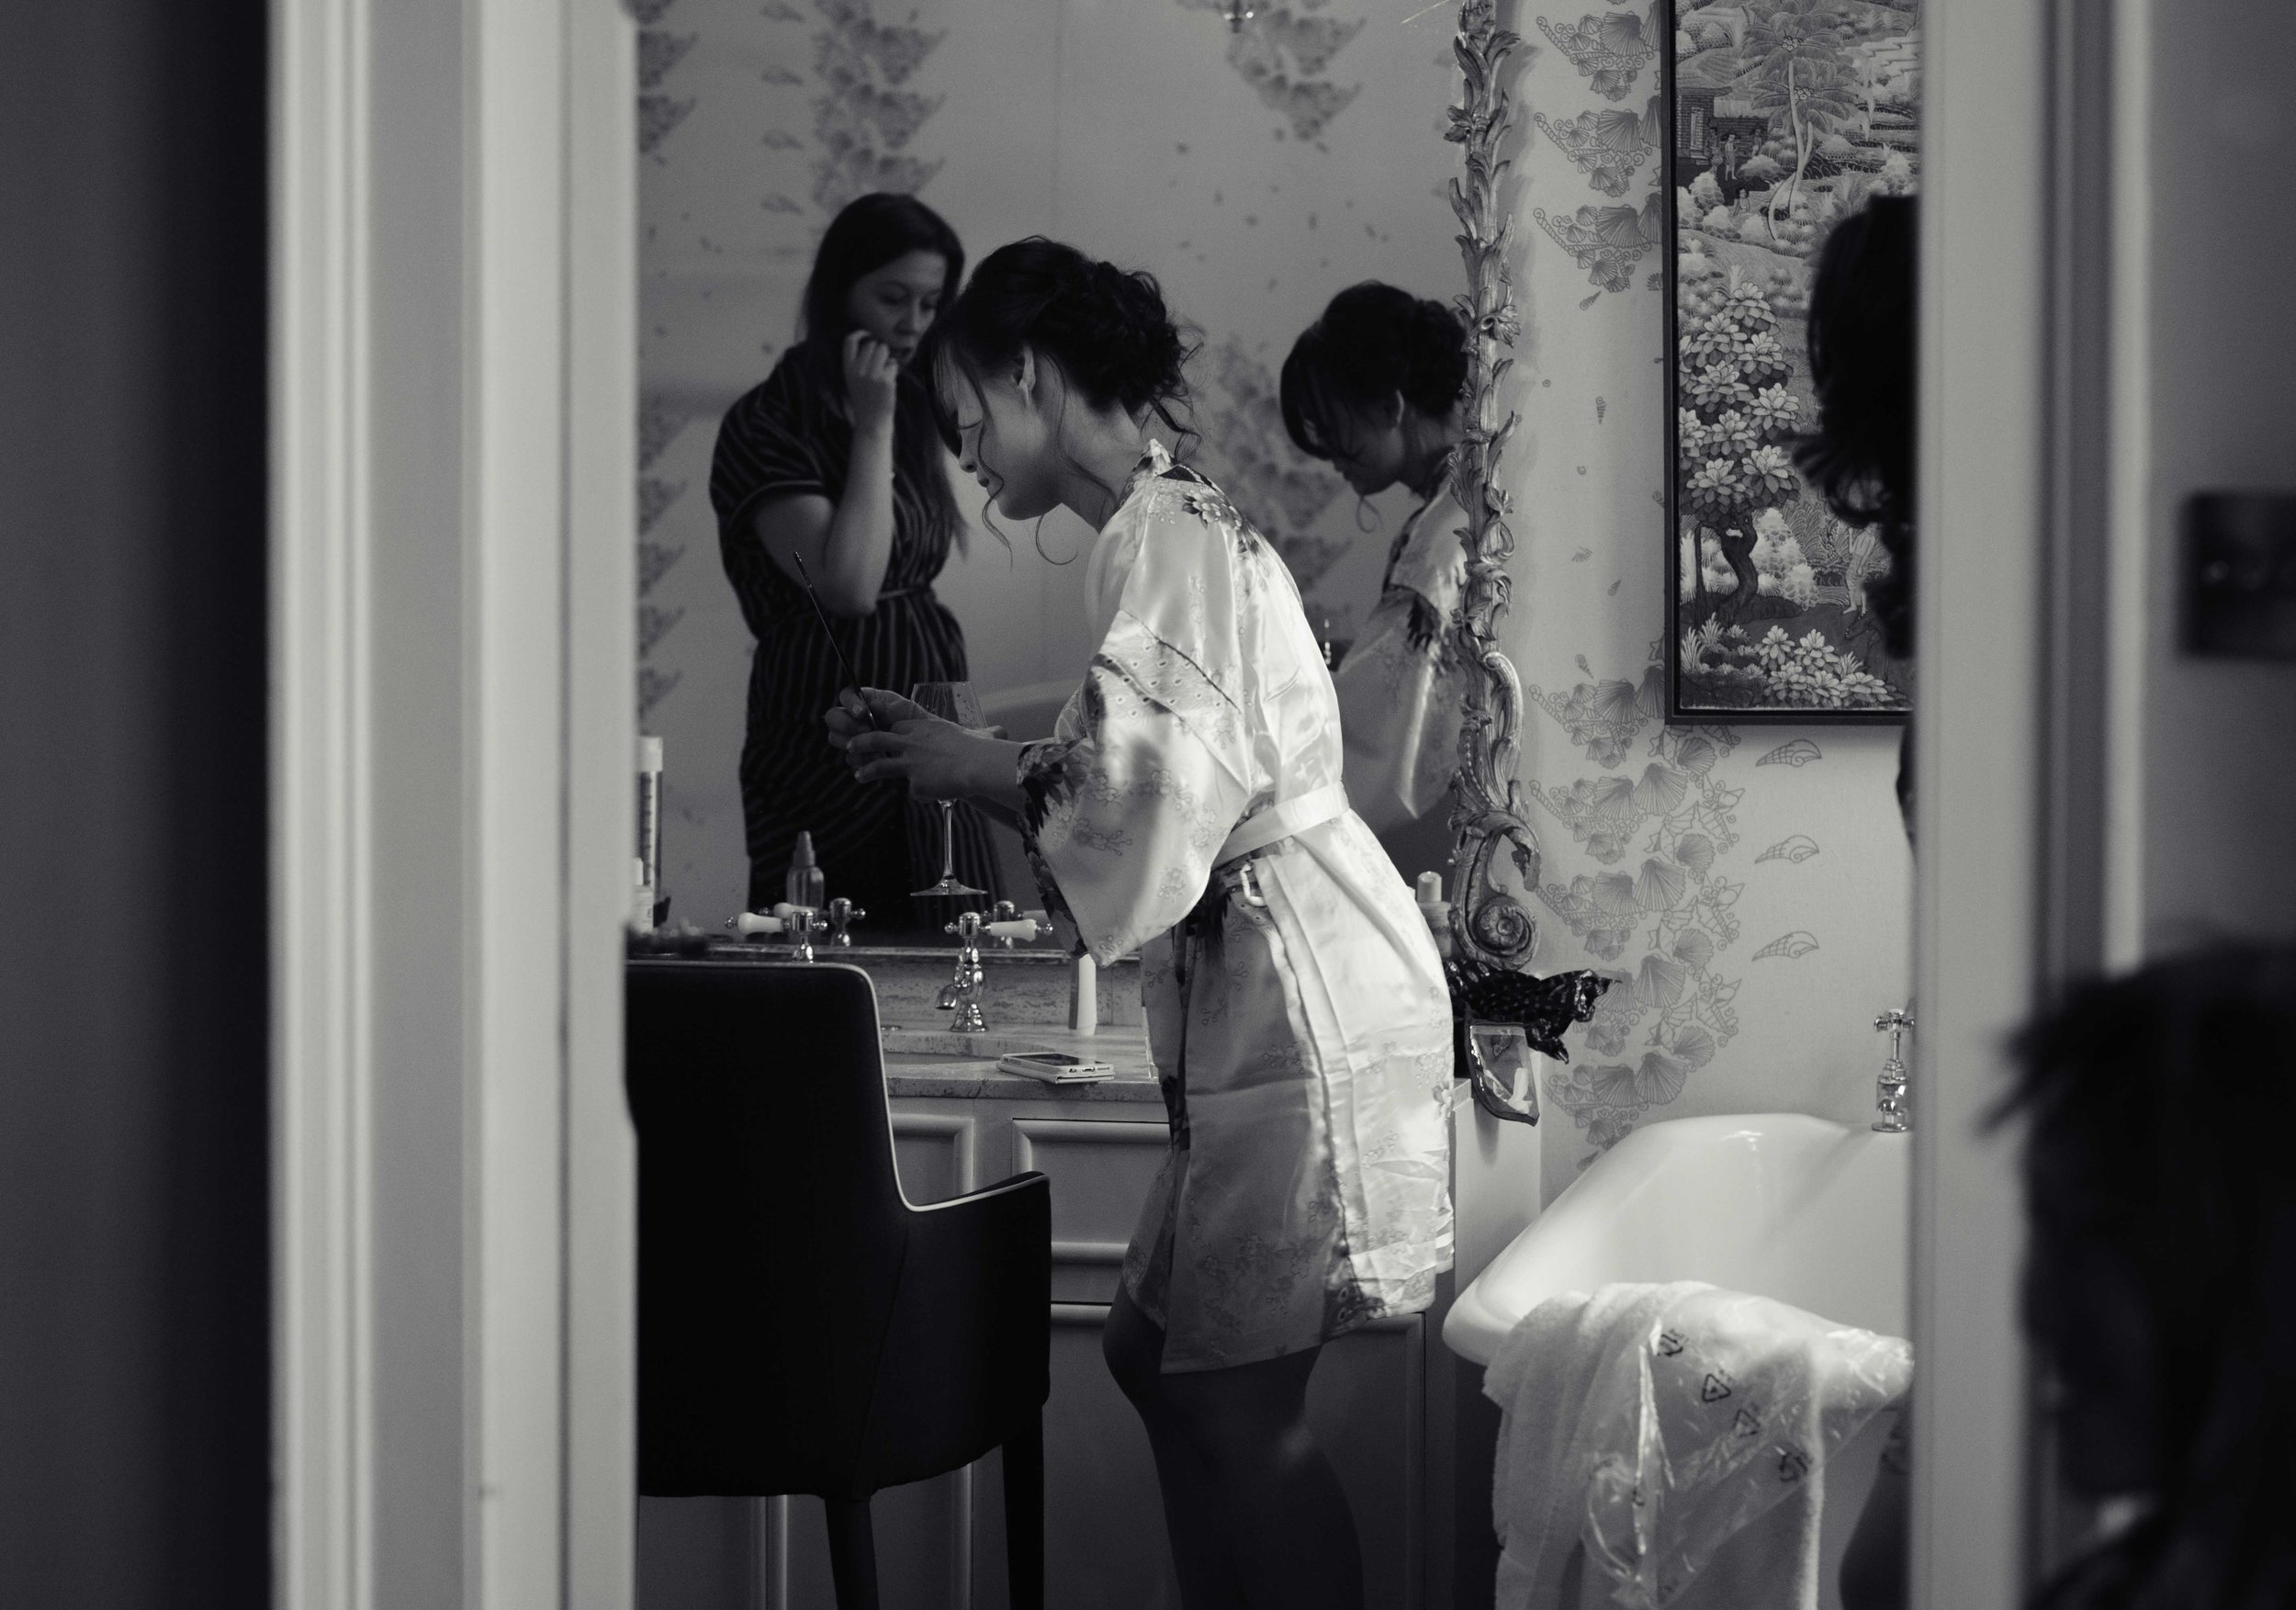 the bride and her bridesmaids getting ready in the bathroom